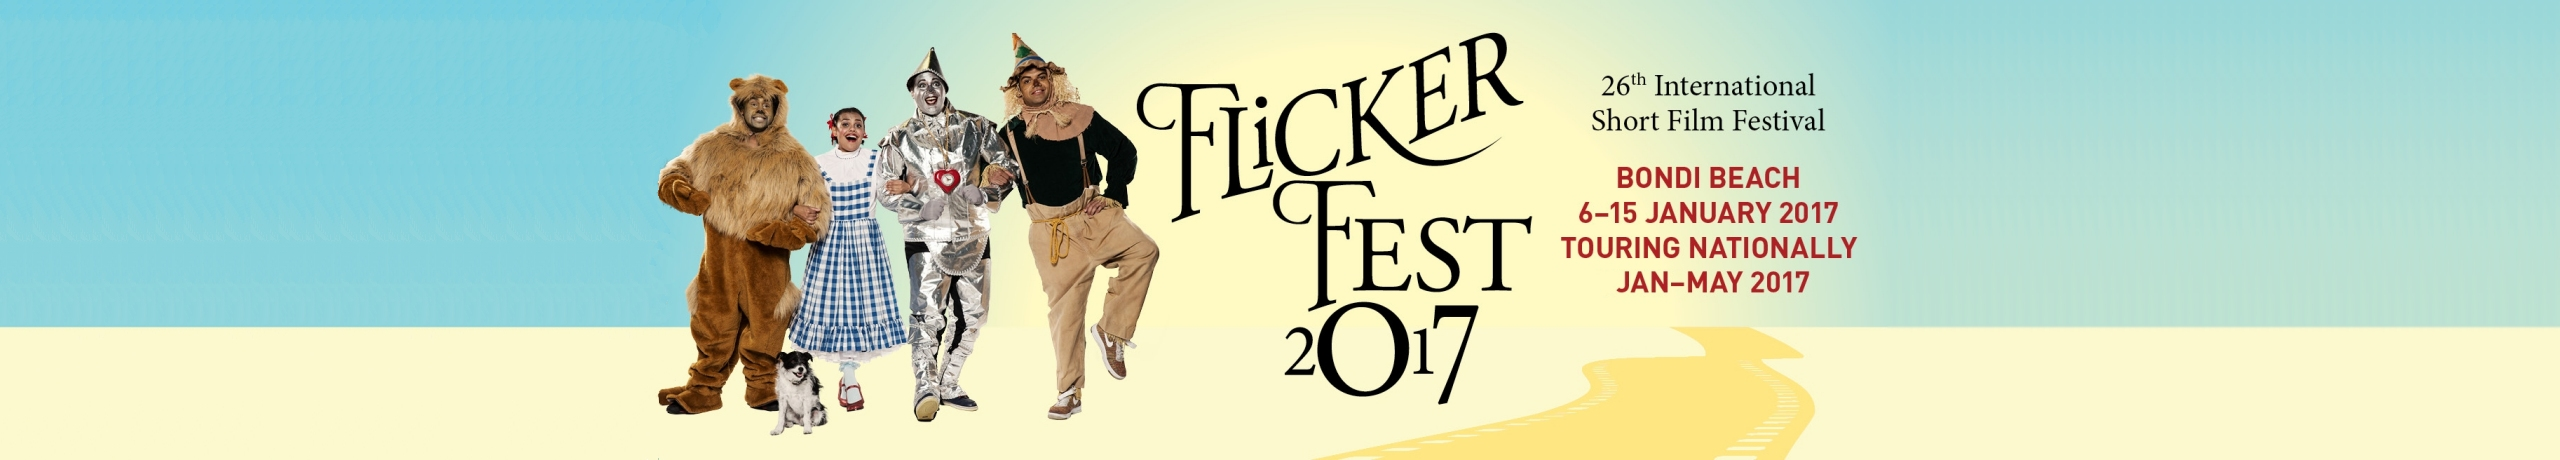 Flickerfest-2017-carousel-artwork.jpg